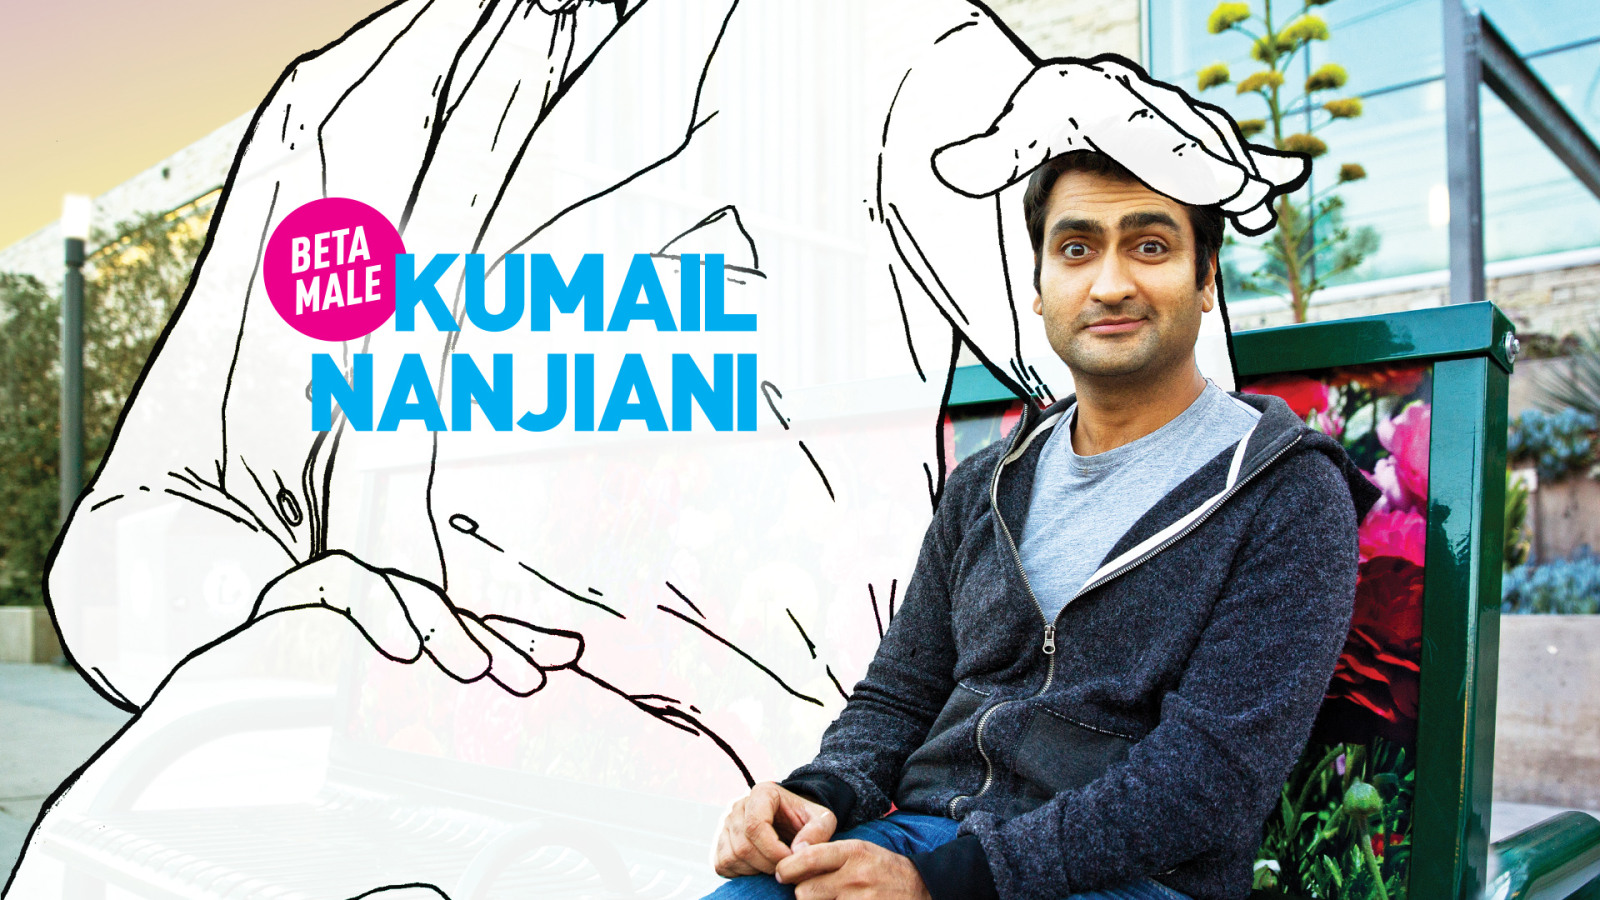 KUMAIL NANJIANI - BETA MALE